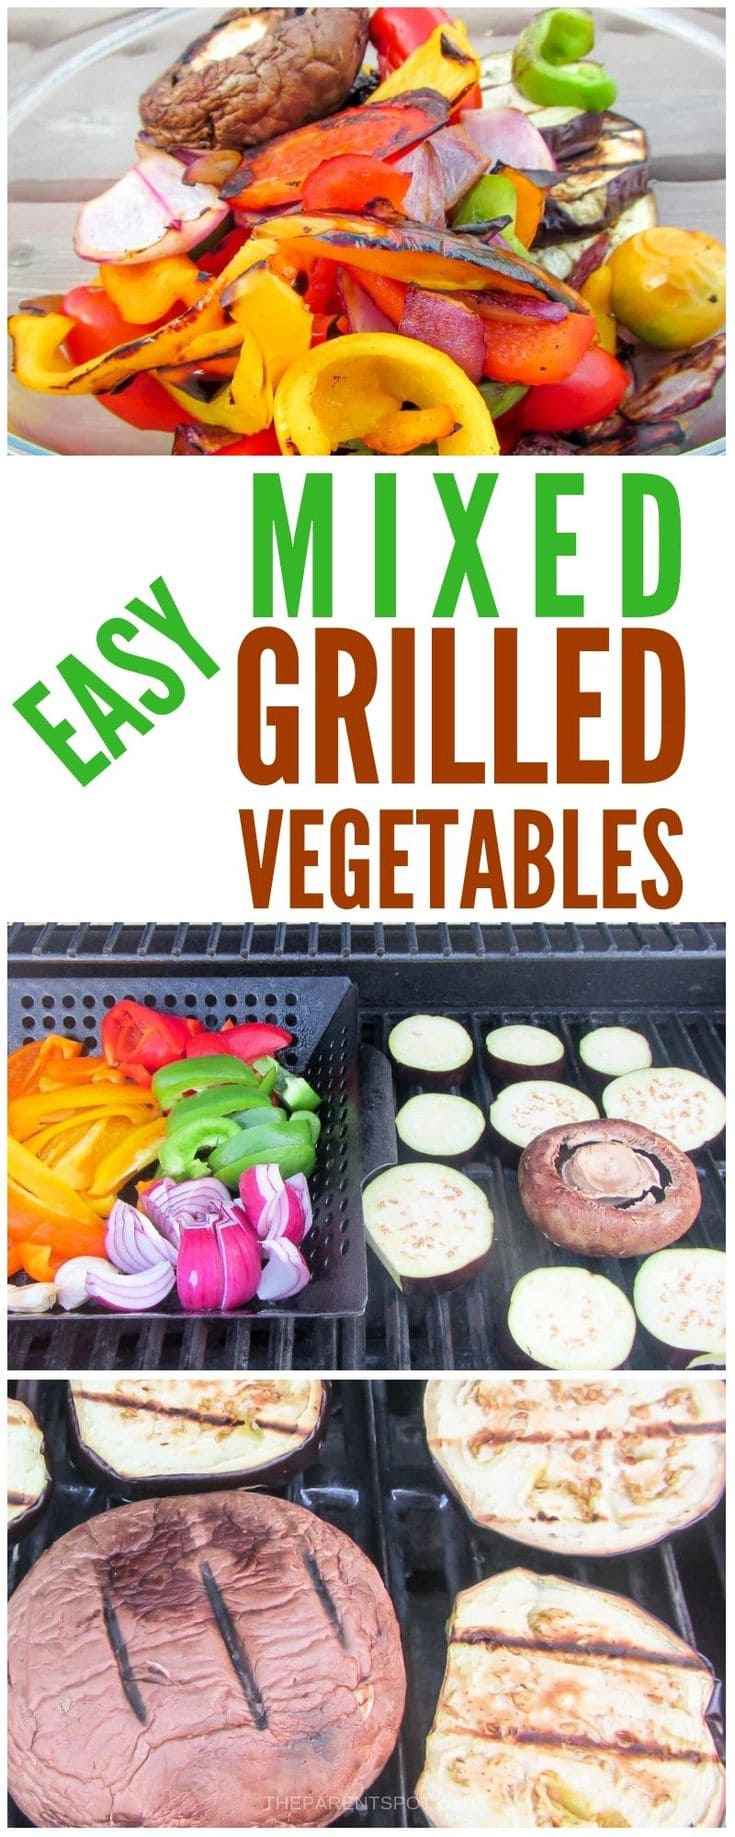 These easy mixed grilled vegetables are made in a basket on the BBQ, and have an amazing flavor and burst of color